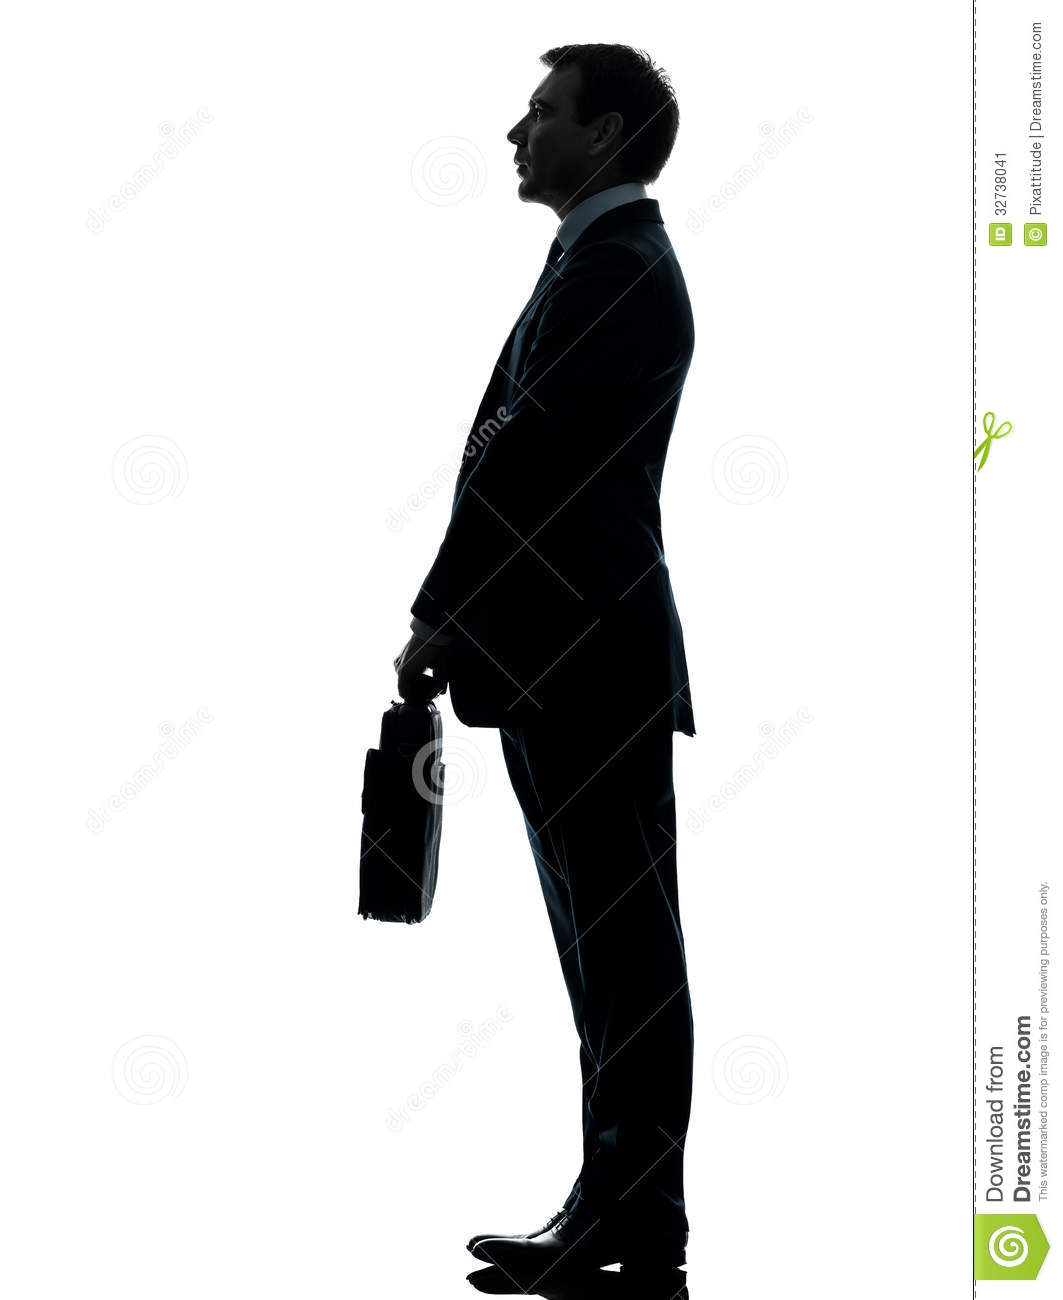 Black and white clipart of a person standing sideways clip transparent stock Person Standing Sideways   Free download best Person Standing ... clip transparent stock